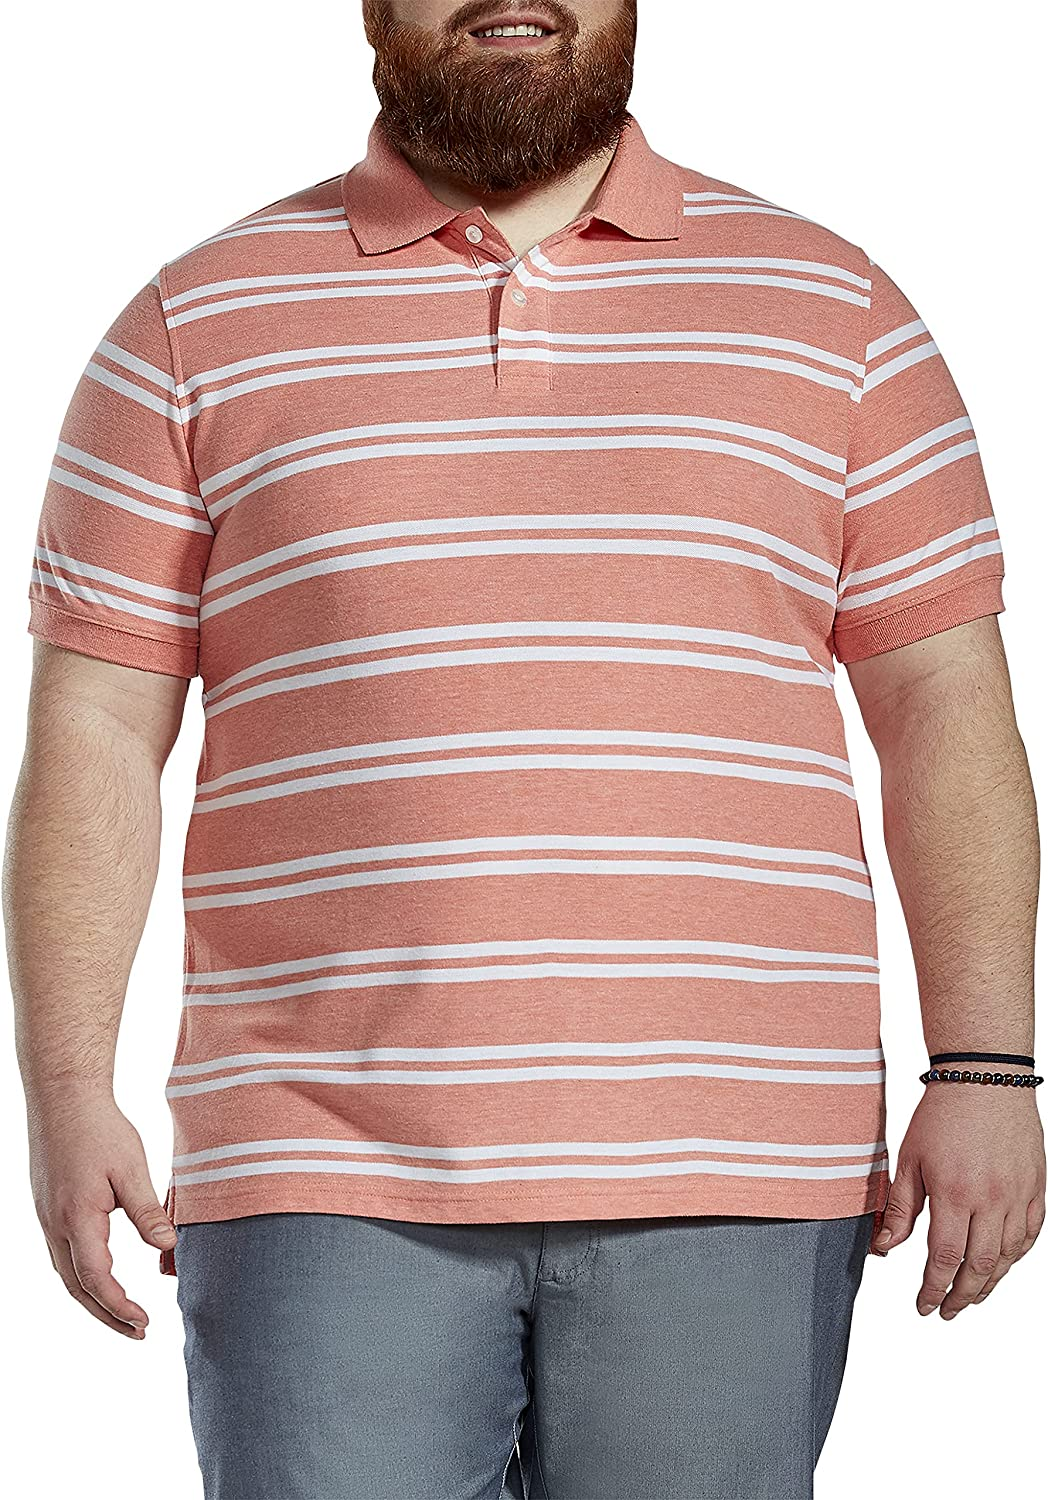 Harbor Bay by DXL Big and Tall Double Stripe Polo Shirt, Orange Multi